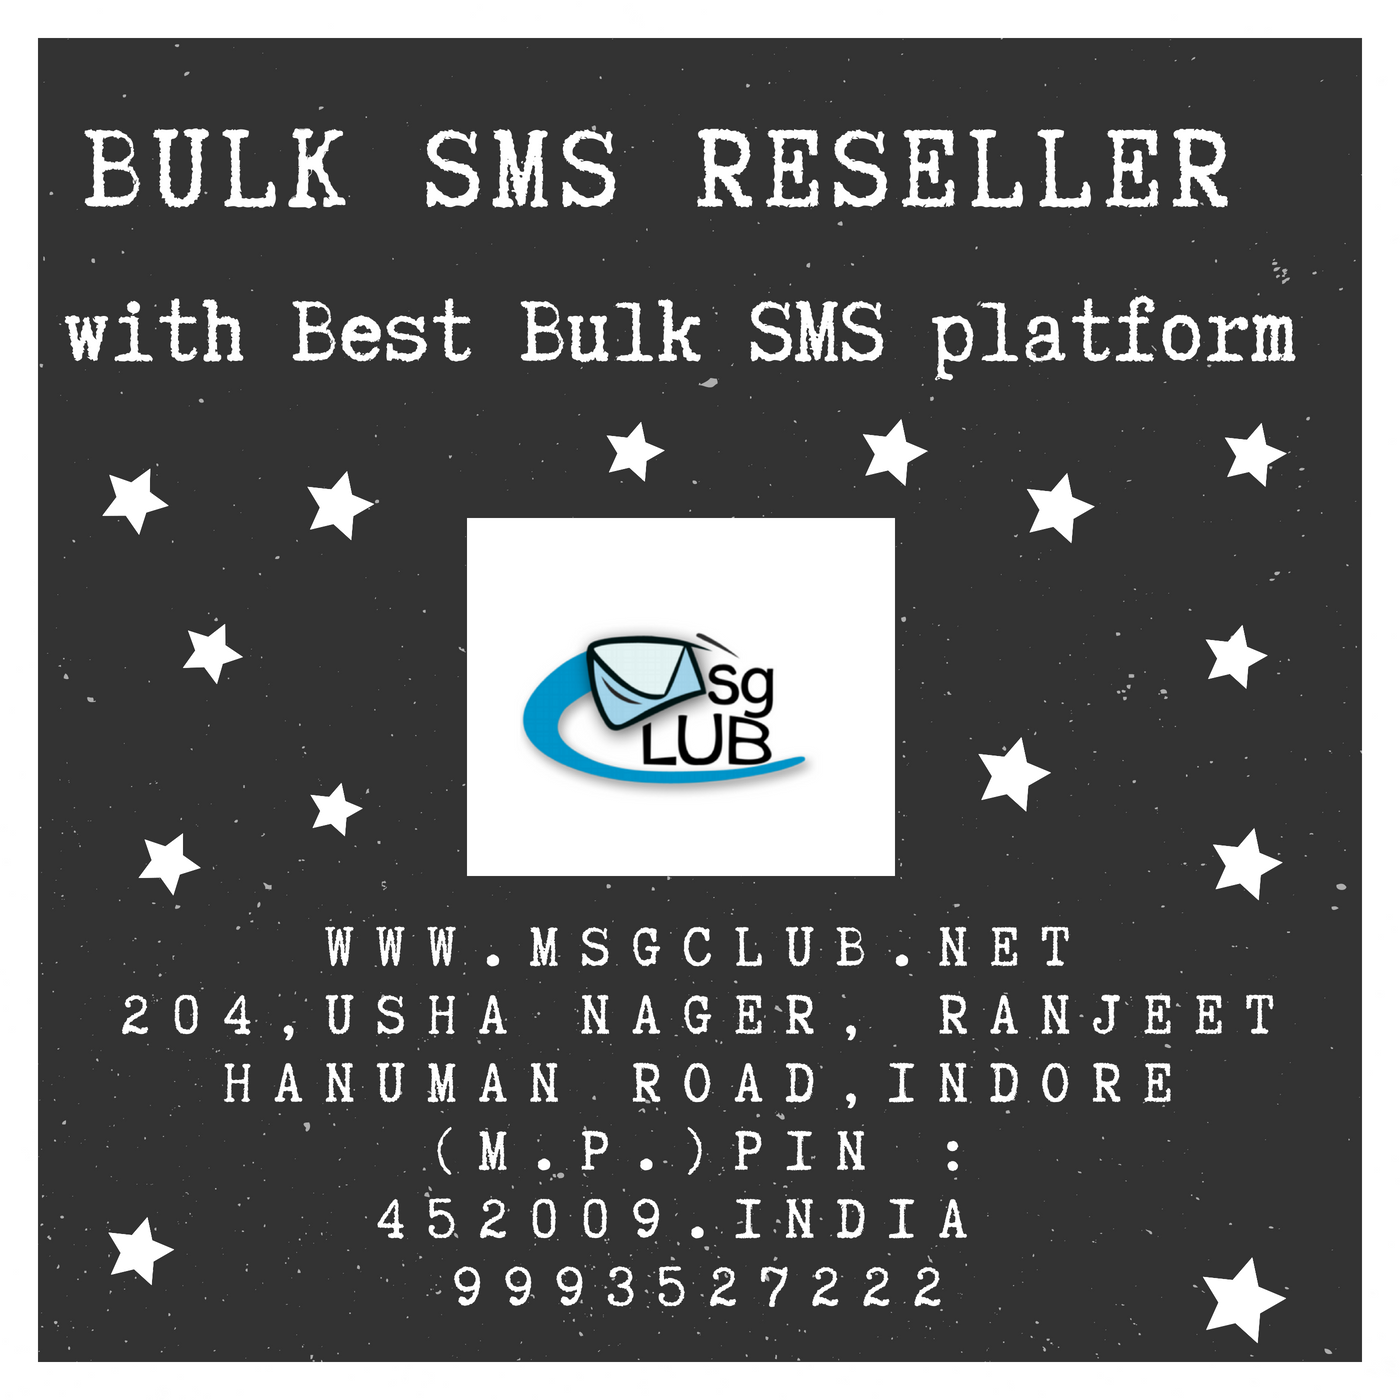 Bulk sms reseller best online business in india